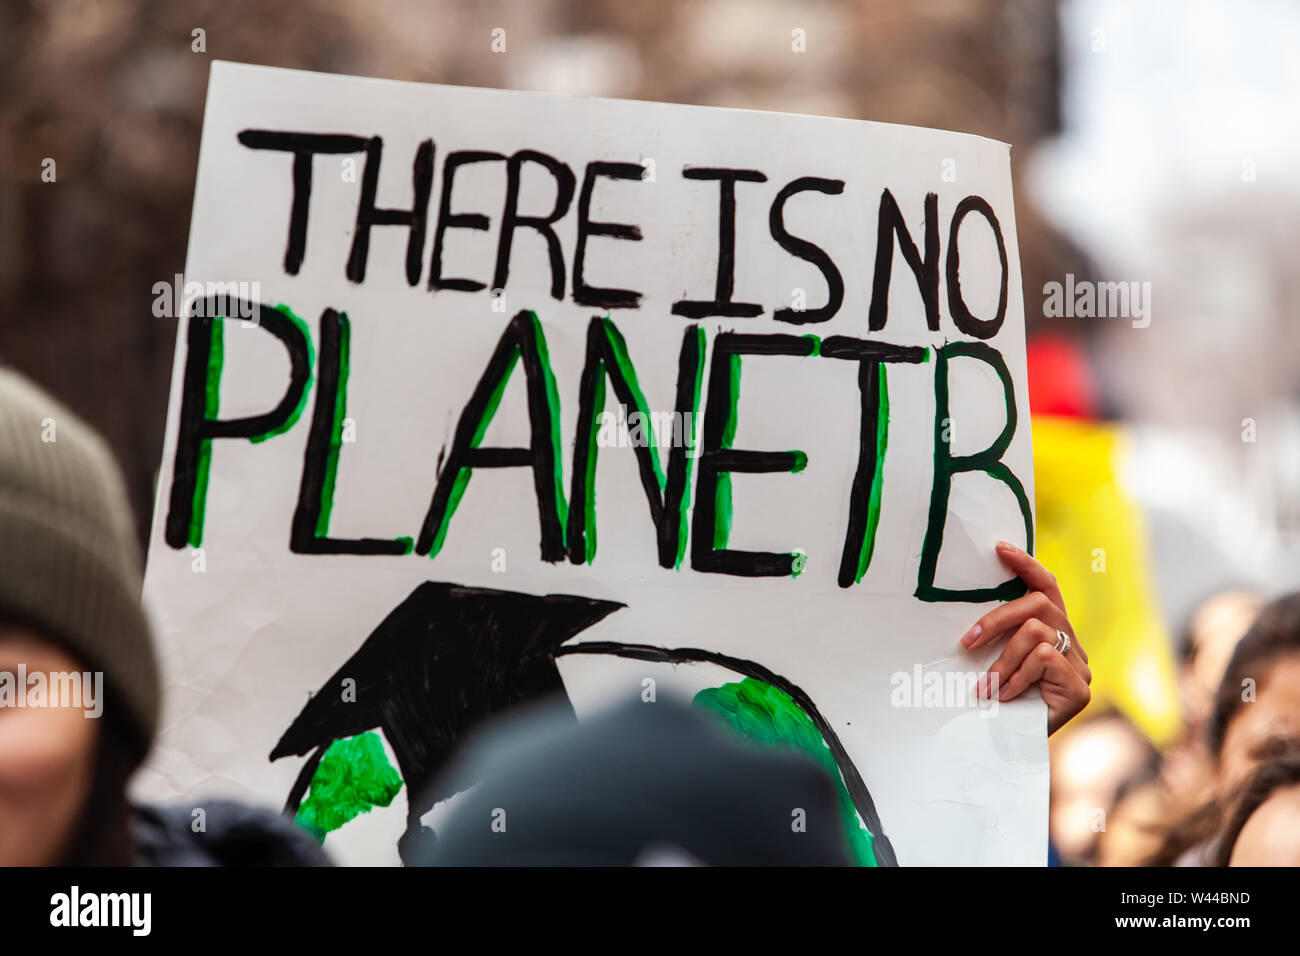 A closeup view of a homemade sign, saying there is no planet b, held by eco-activists during a march against climate change in the city. Stock Photo